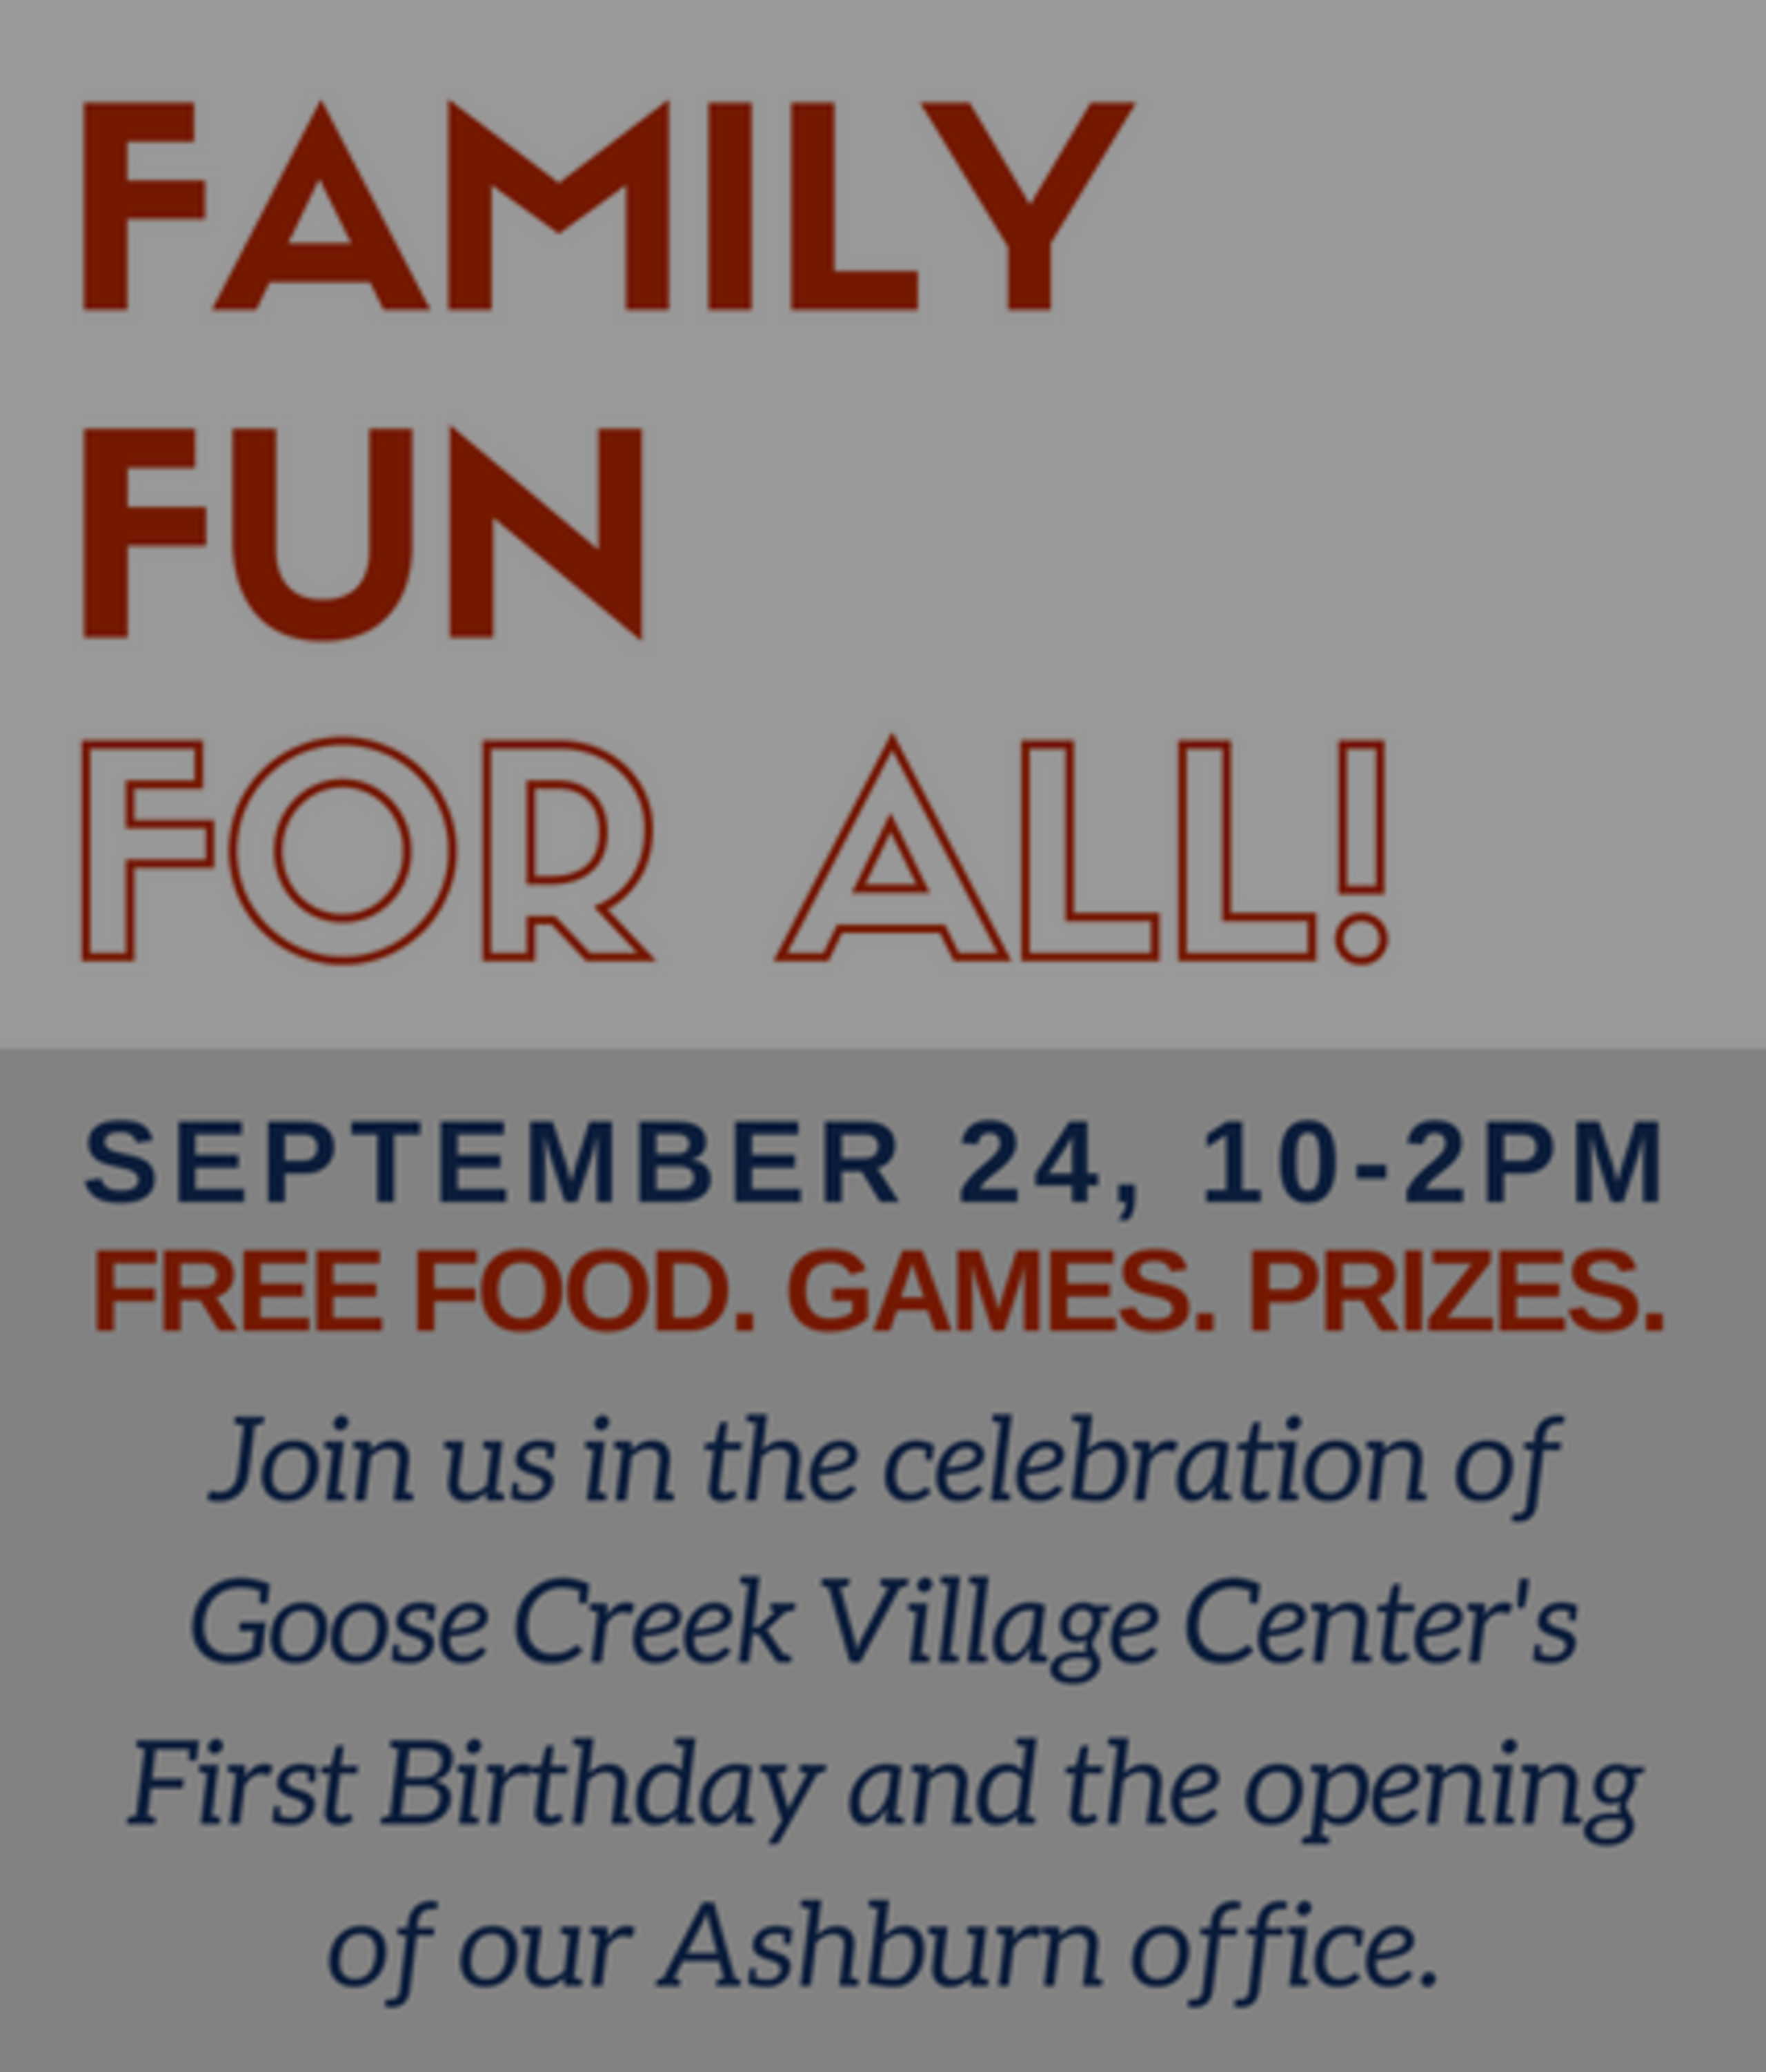 Family Fun for All!